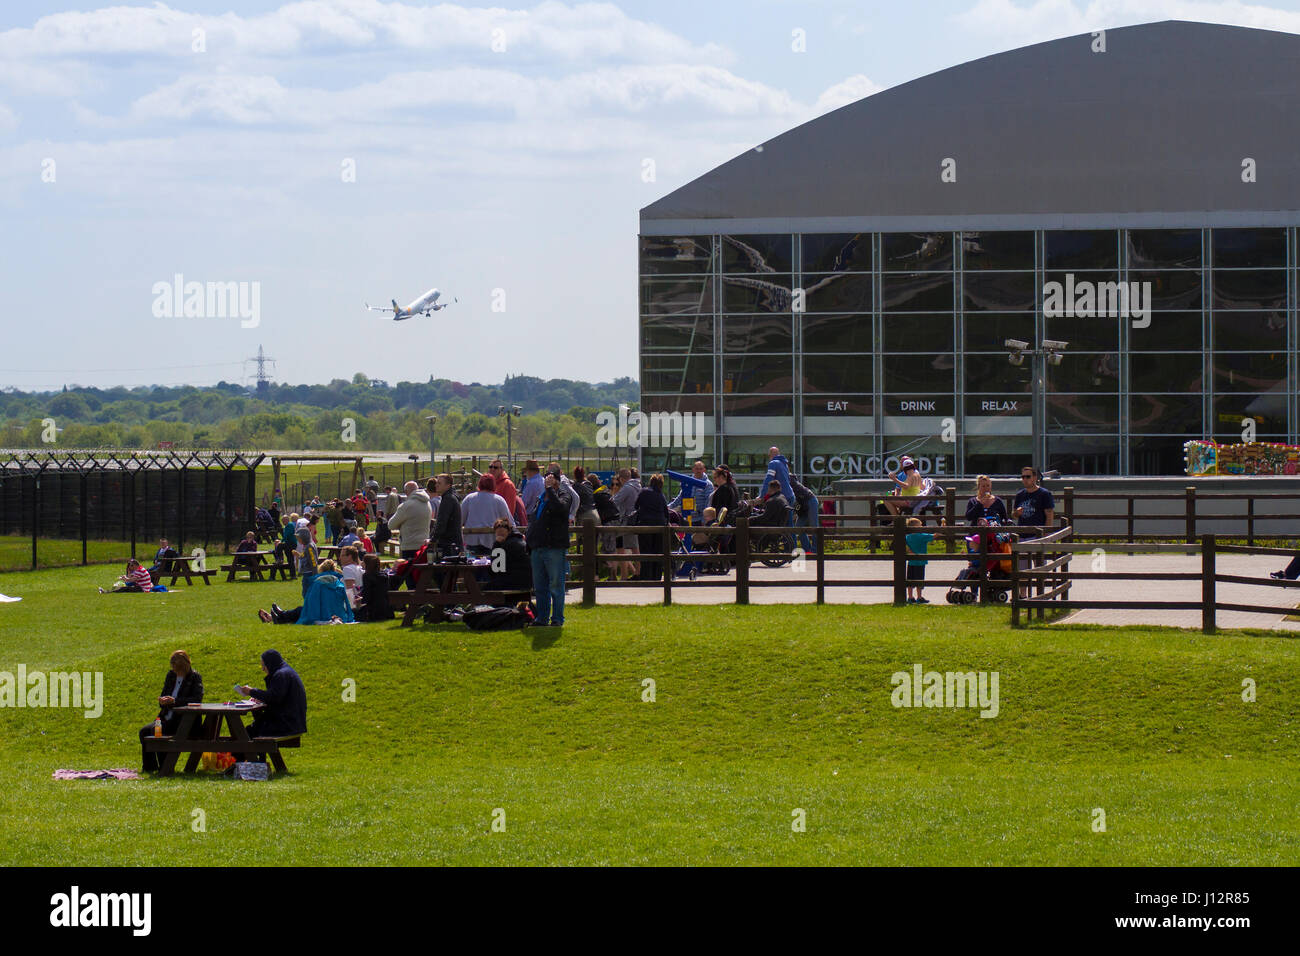 Plane-spotters regardant avion à l'aéroport de Manchester Visualisation Aviation Park Photo Stock